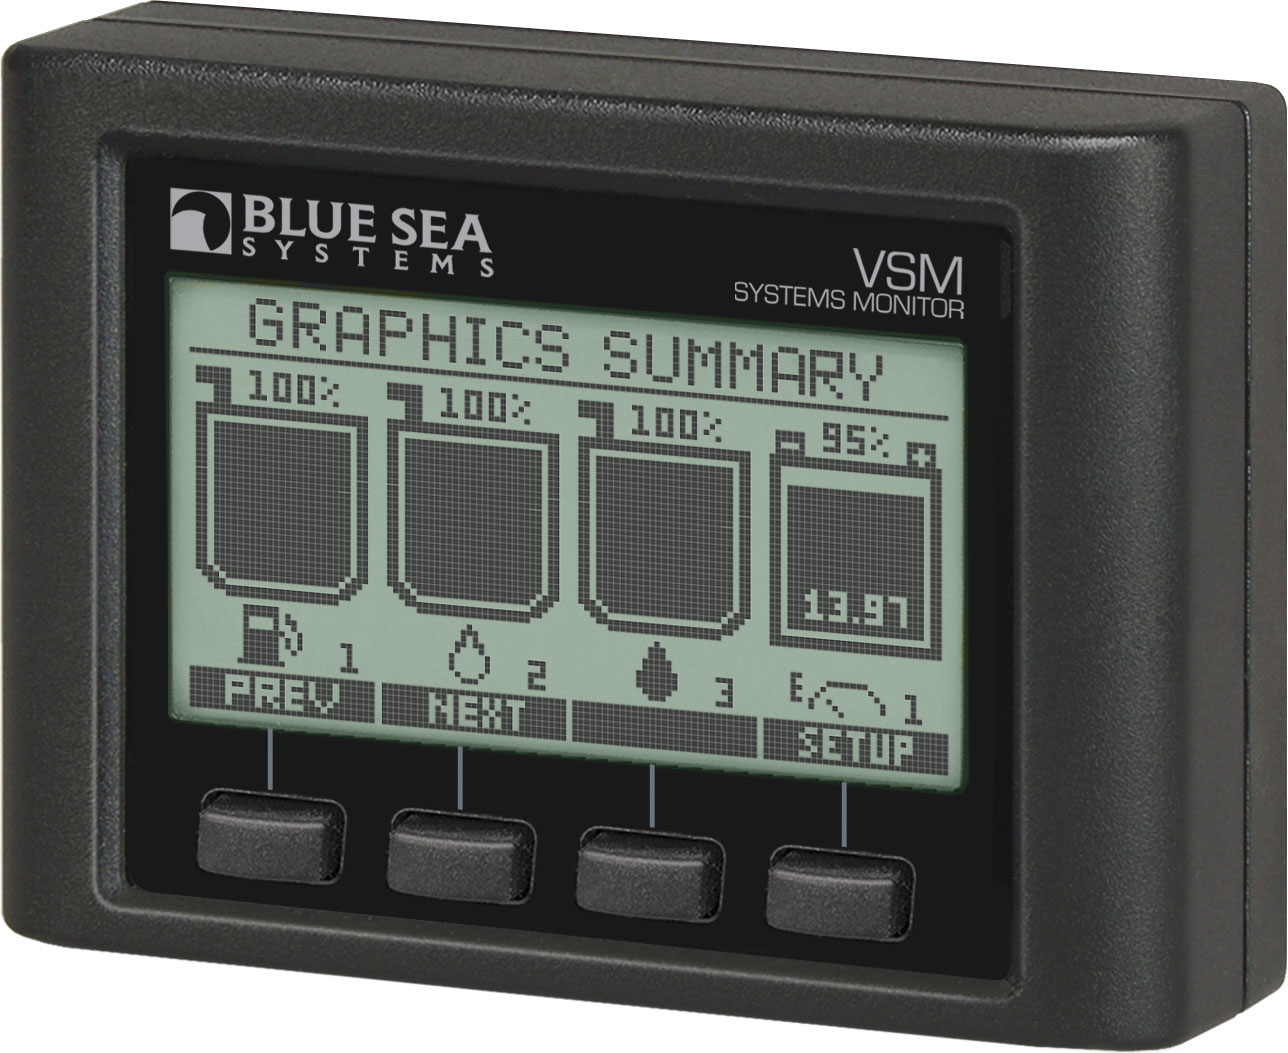 Vessel Systems Monitor Vsm 422 Boxed Blue Sea Part 1 Choosing The Correct Wire Size For A Dc Circuit Product Image